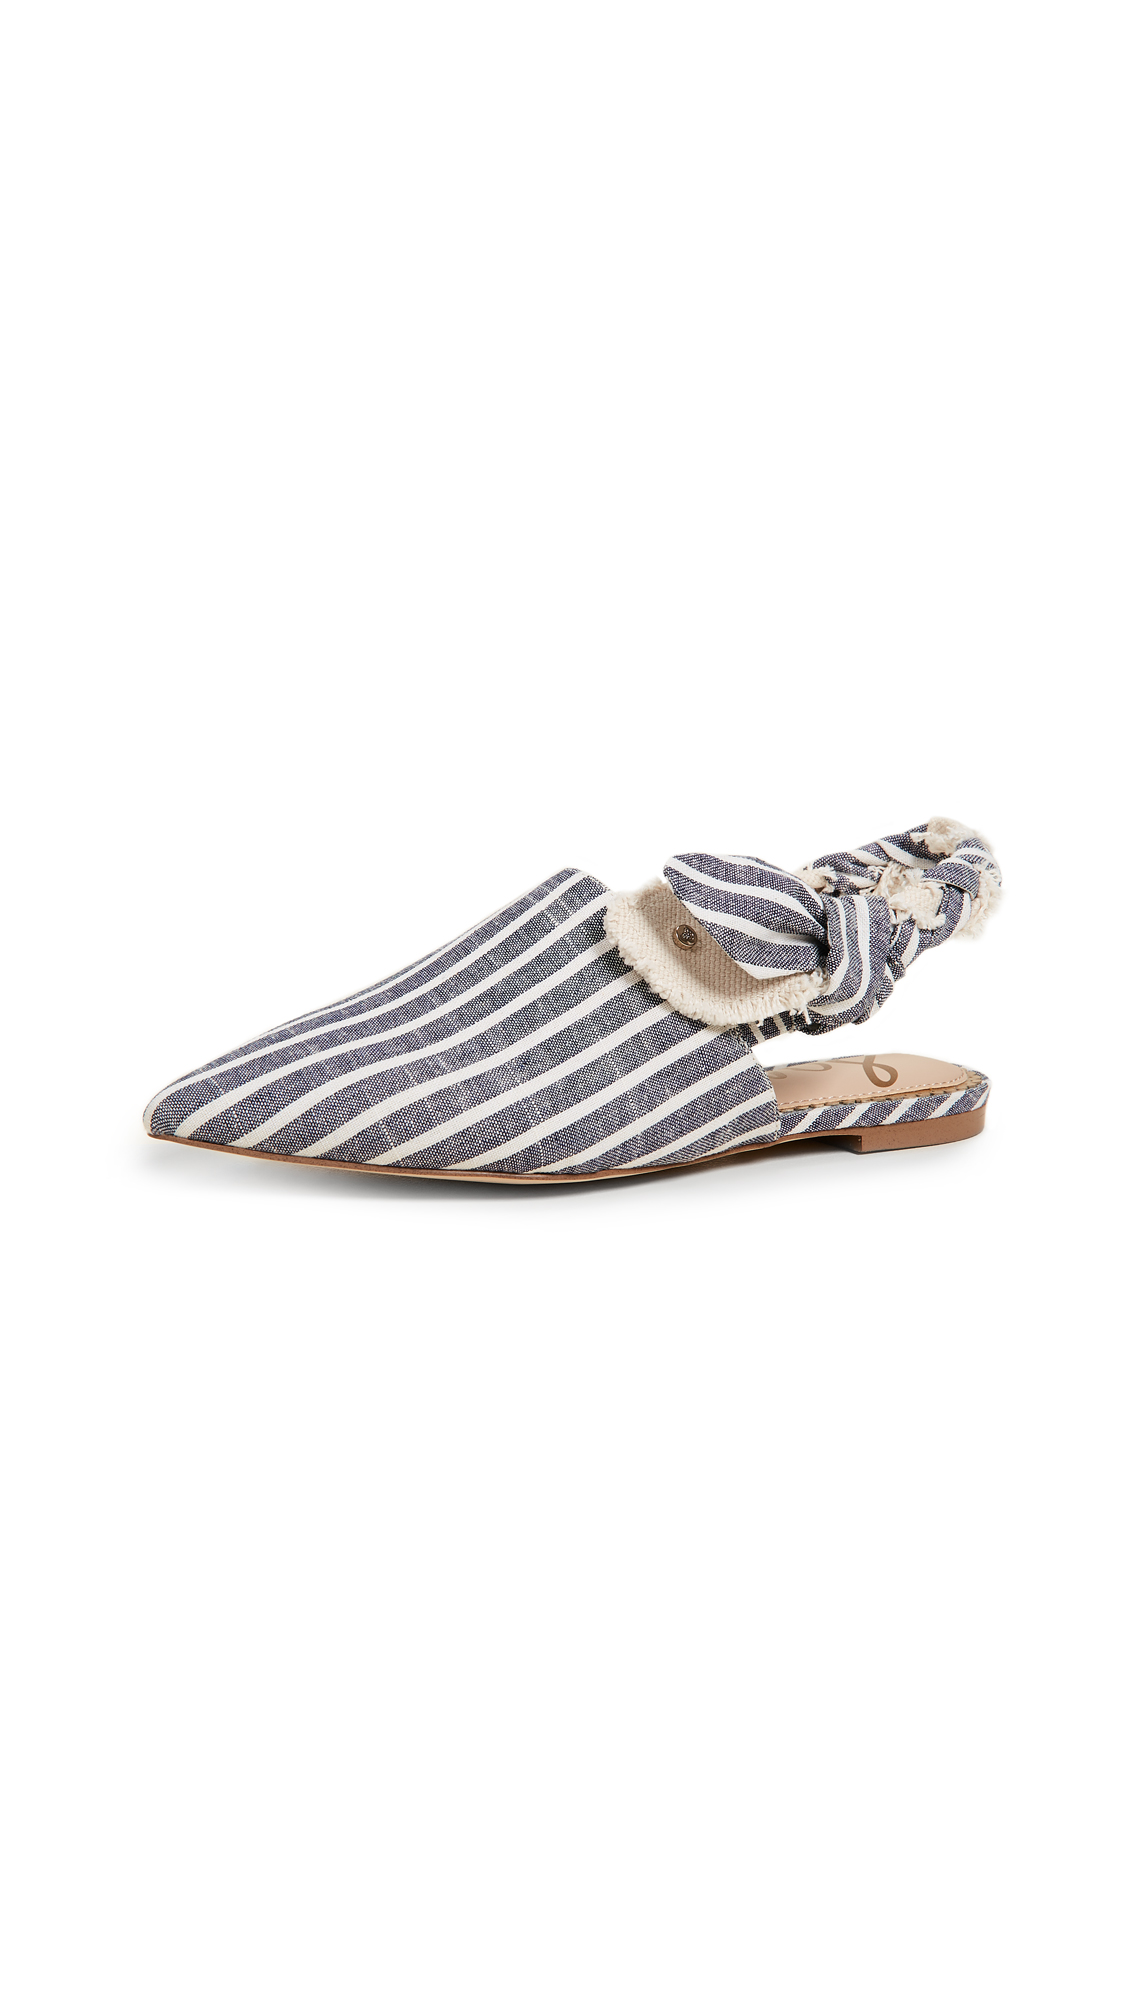 Sam Edelman Rivers Flats - Sea Blue Multi/Ivory